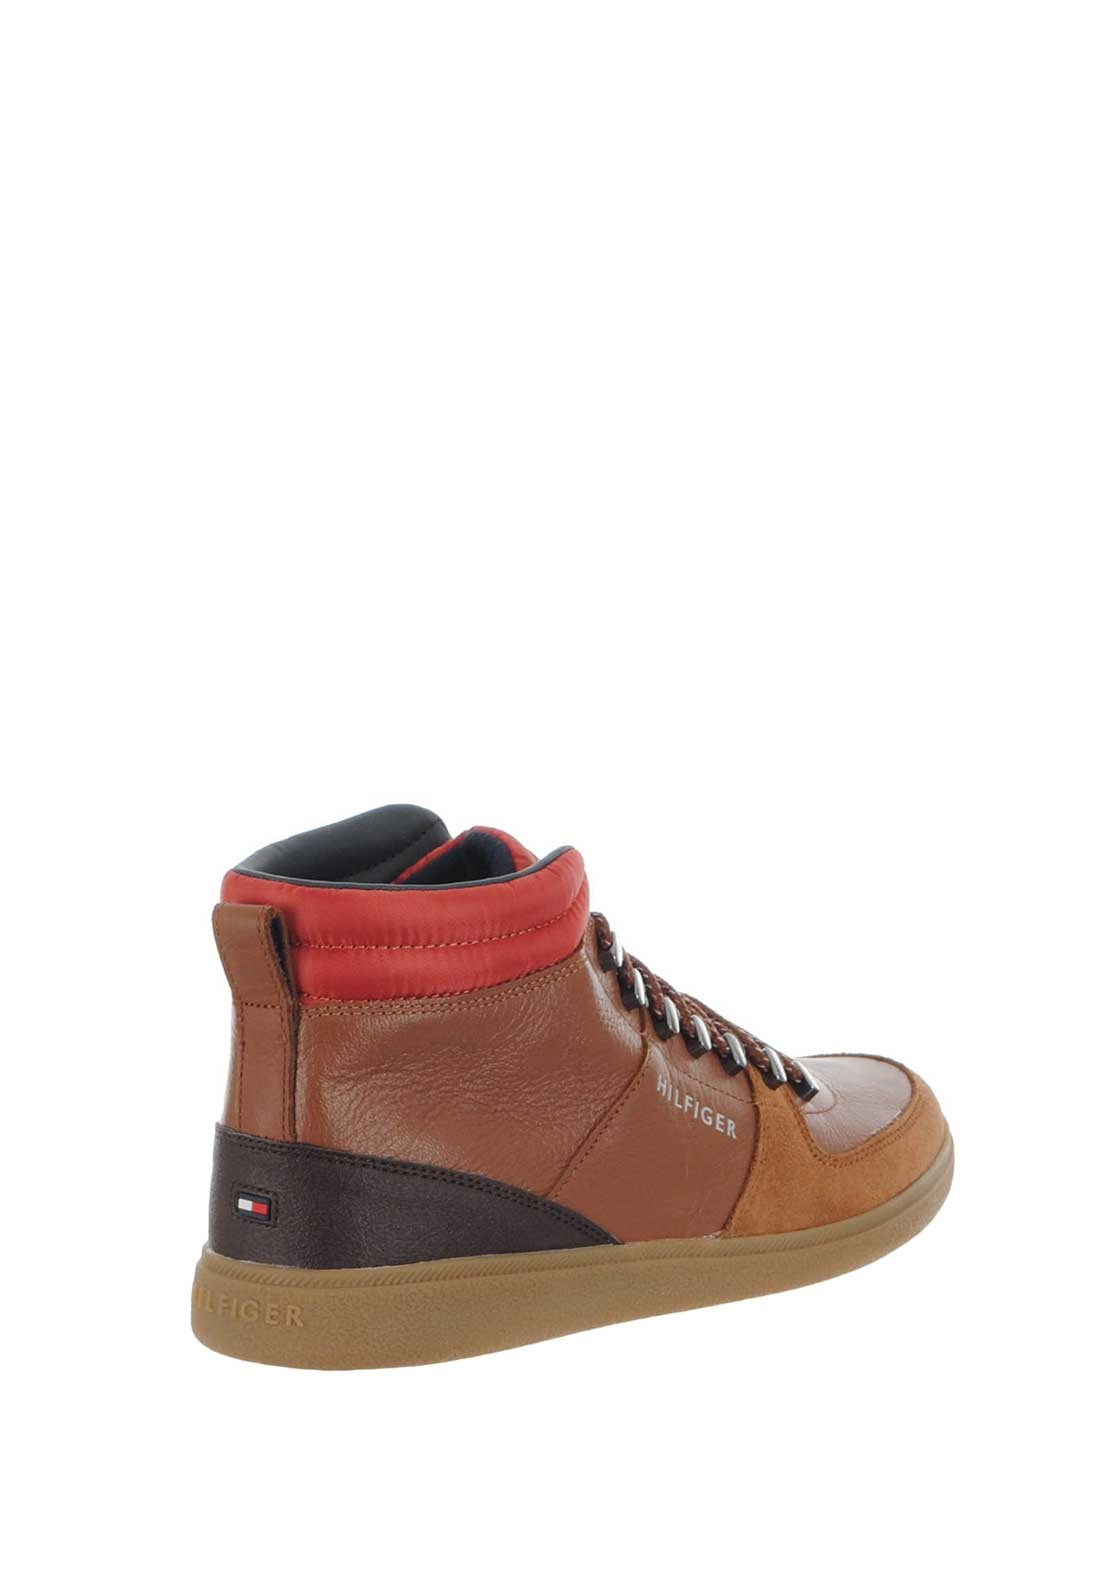 8d20b9d2b0e4 Tommy Hilfiger Core Hiking Inspired Ankle Boot